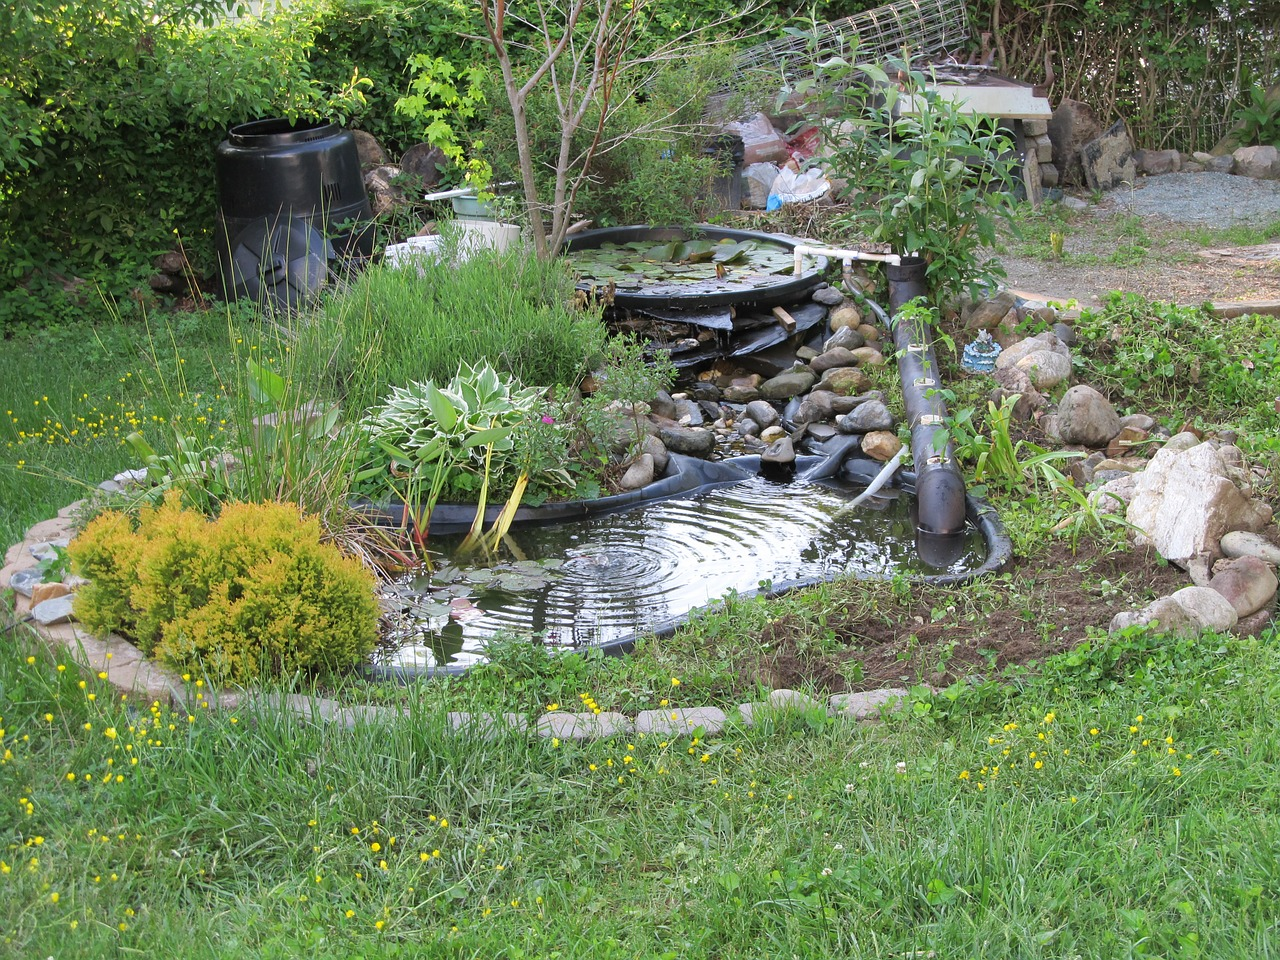 Diy build a natural fish pond in your backyard for How to build a koi pond on a budget